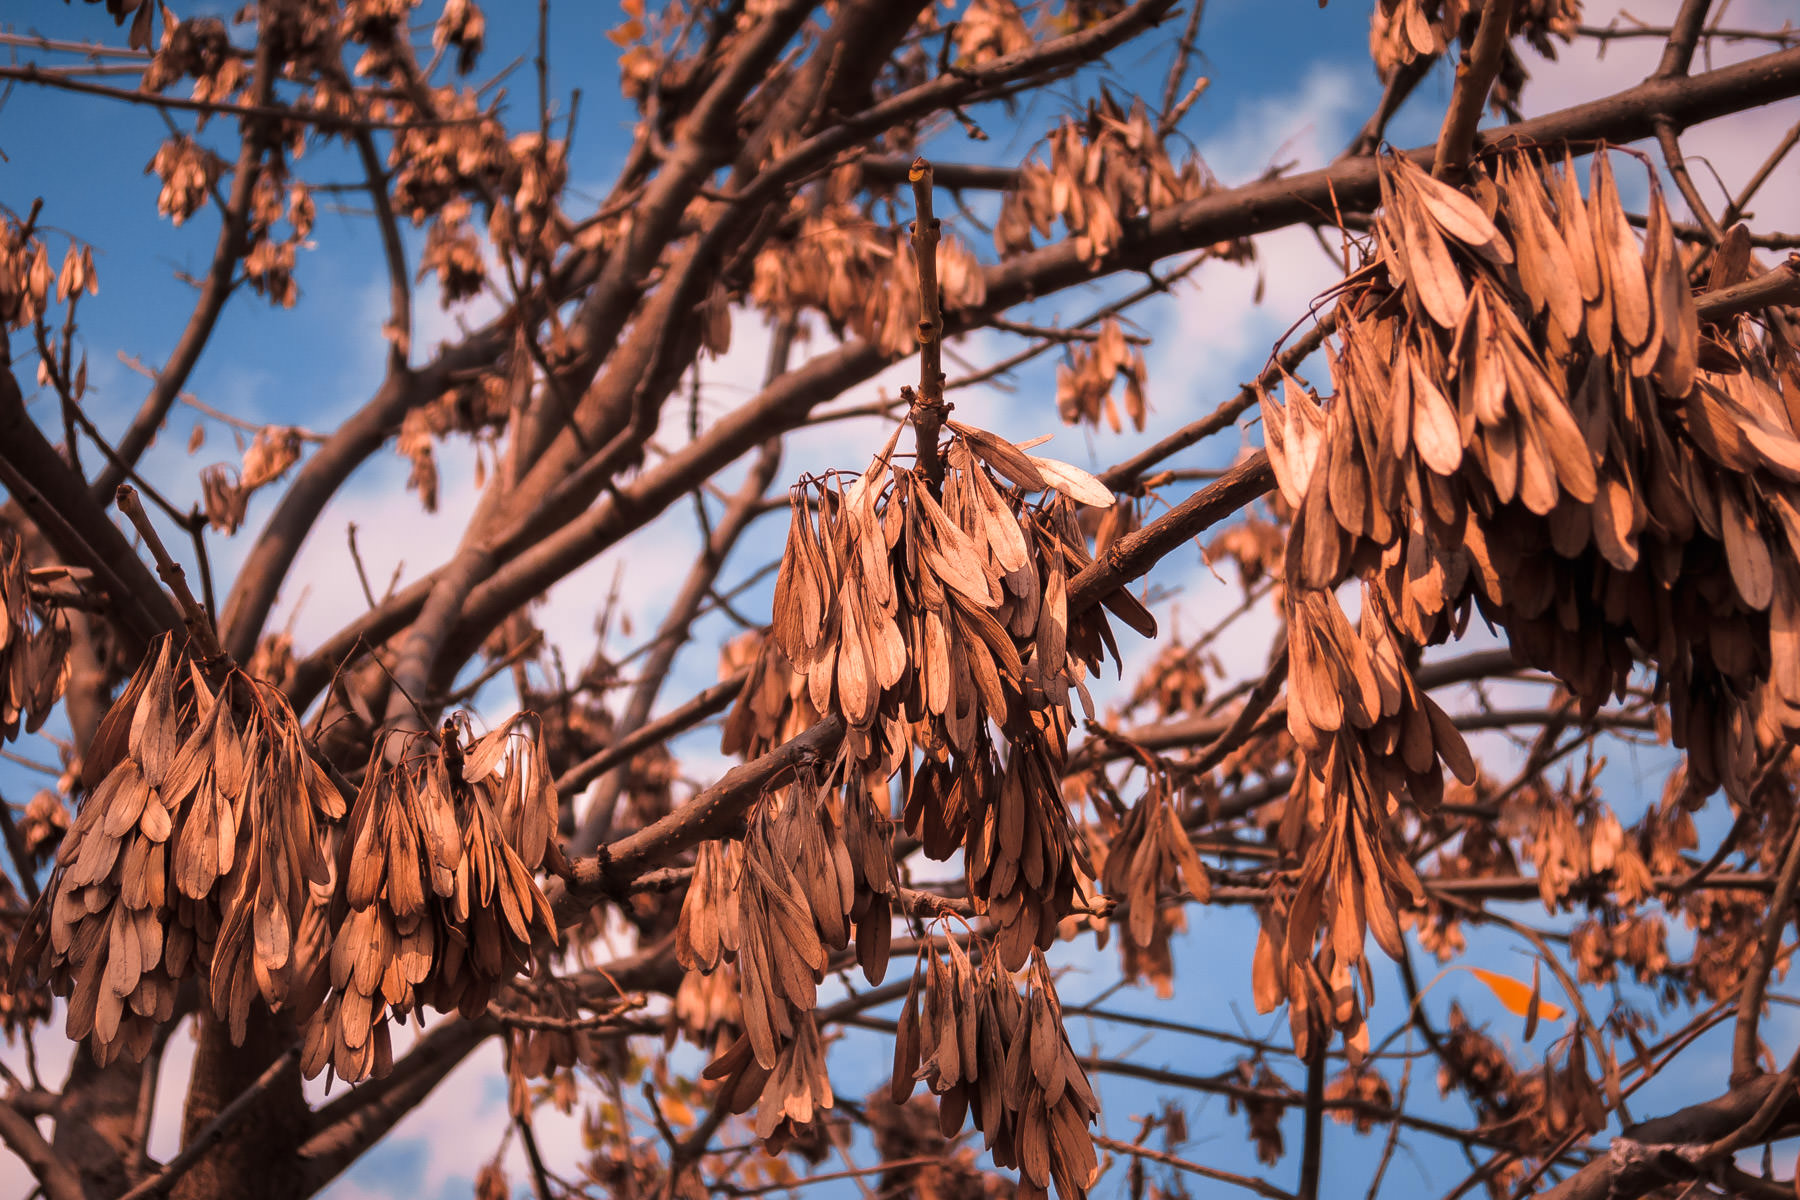 Leaves on this Plano, Texas, tree droop as they get close to falling to the ground.